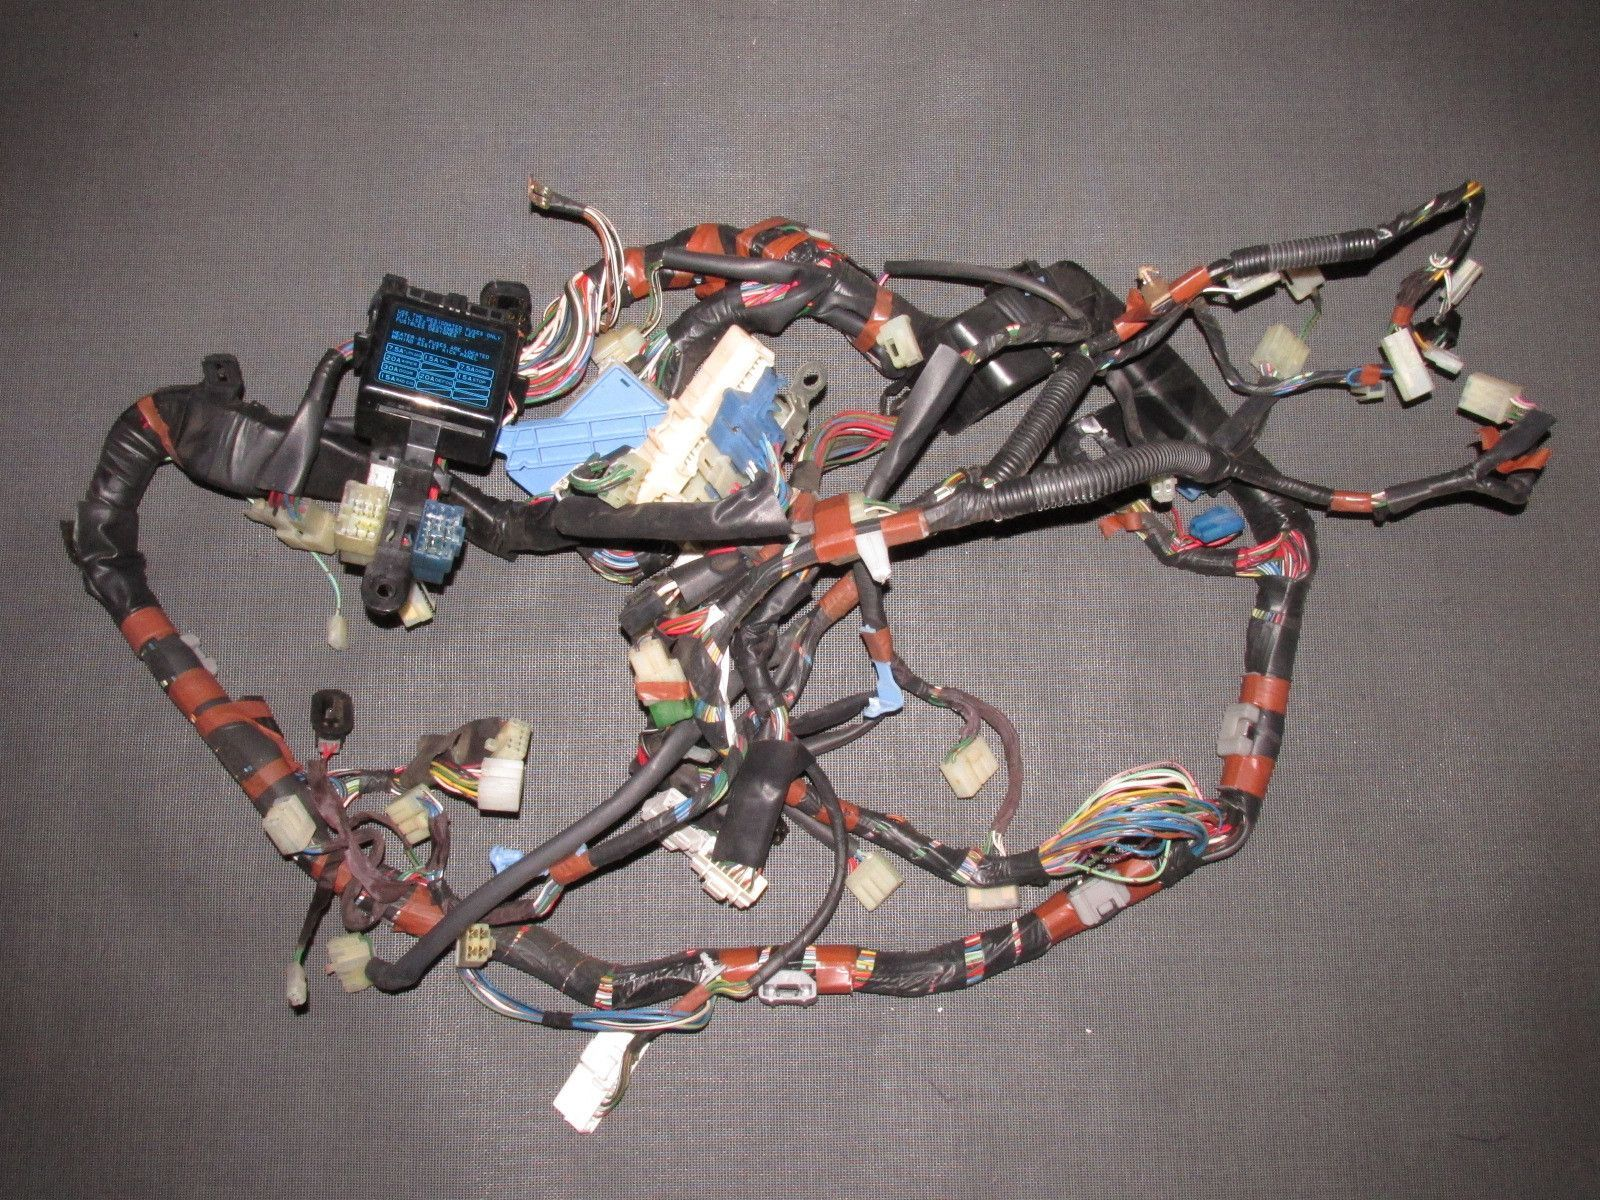 85 86 87 88 89 Toyota MR2 OEM Interior Fuse Box Dash Wiring Harness